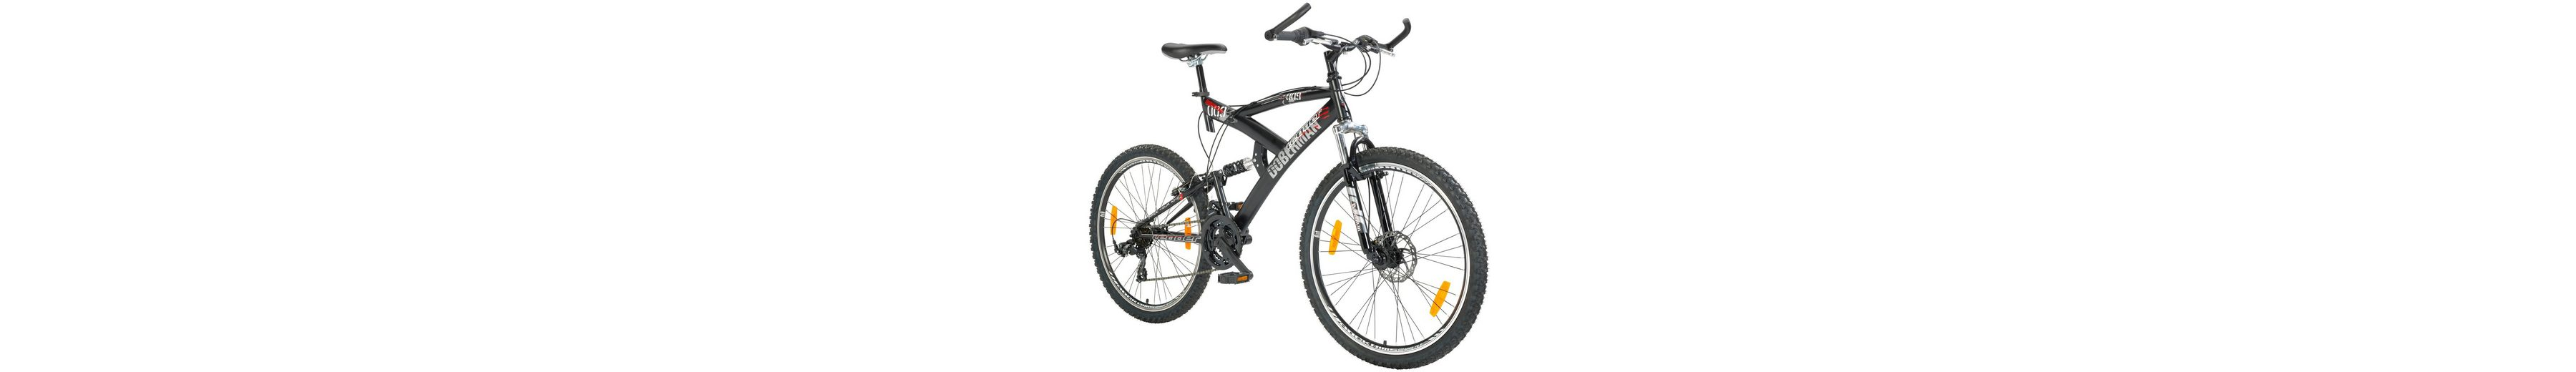 Fully-Mountainbike »66,04 cm (26 Zoll)«